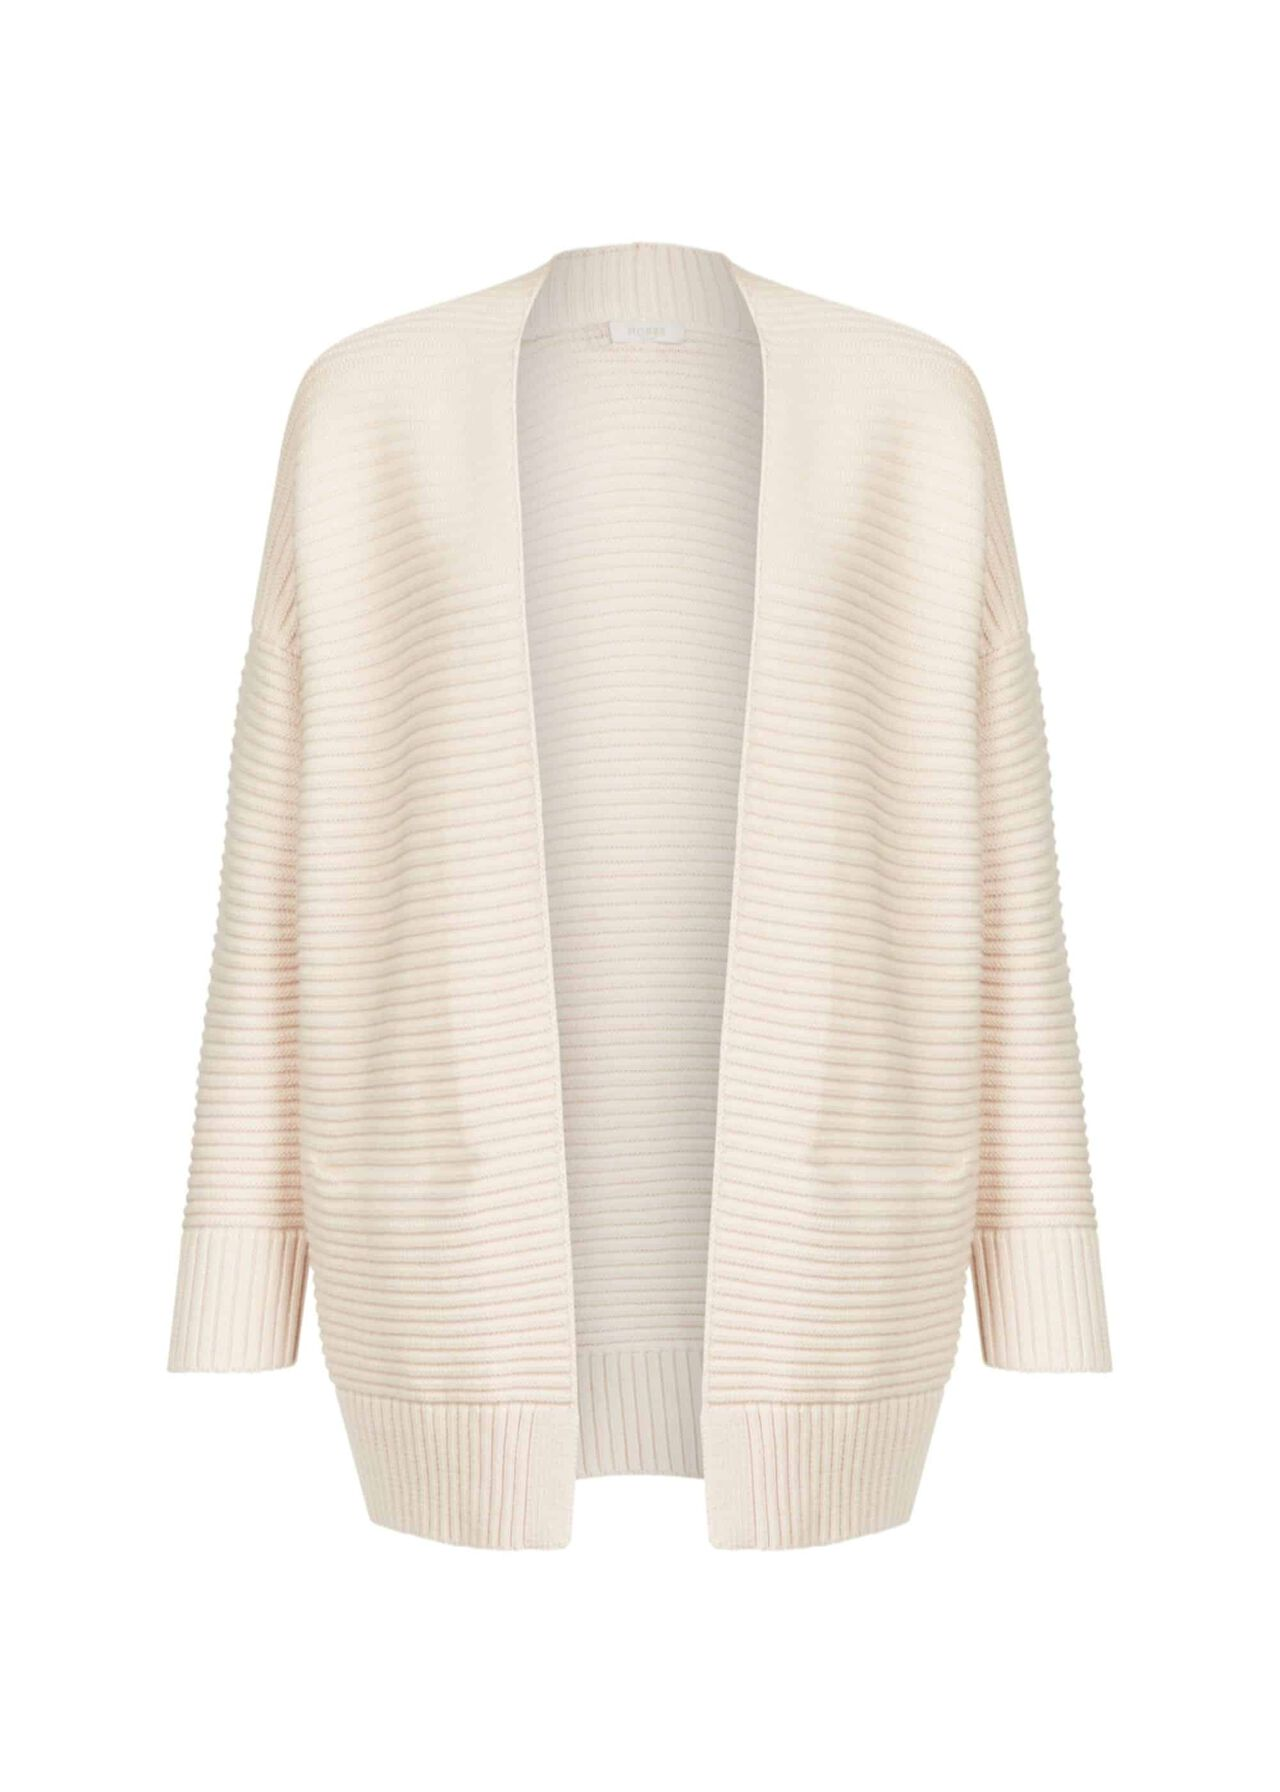 Brittany Cardigan Pale Pink